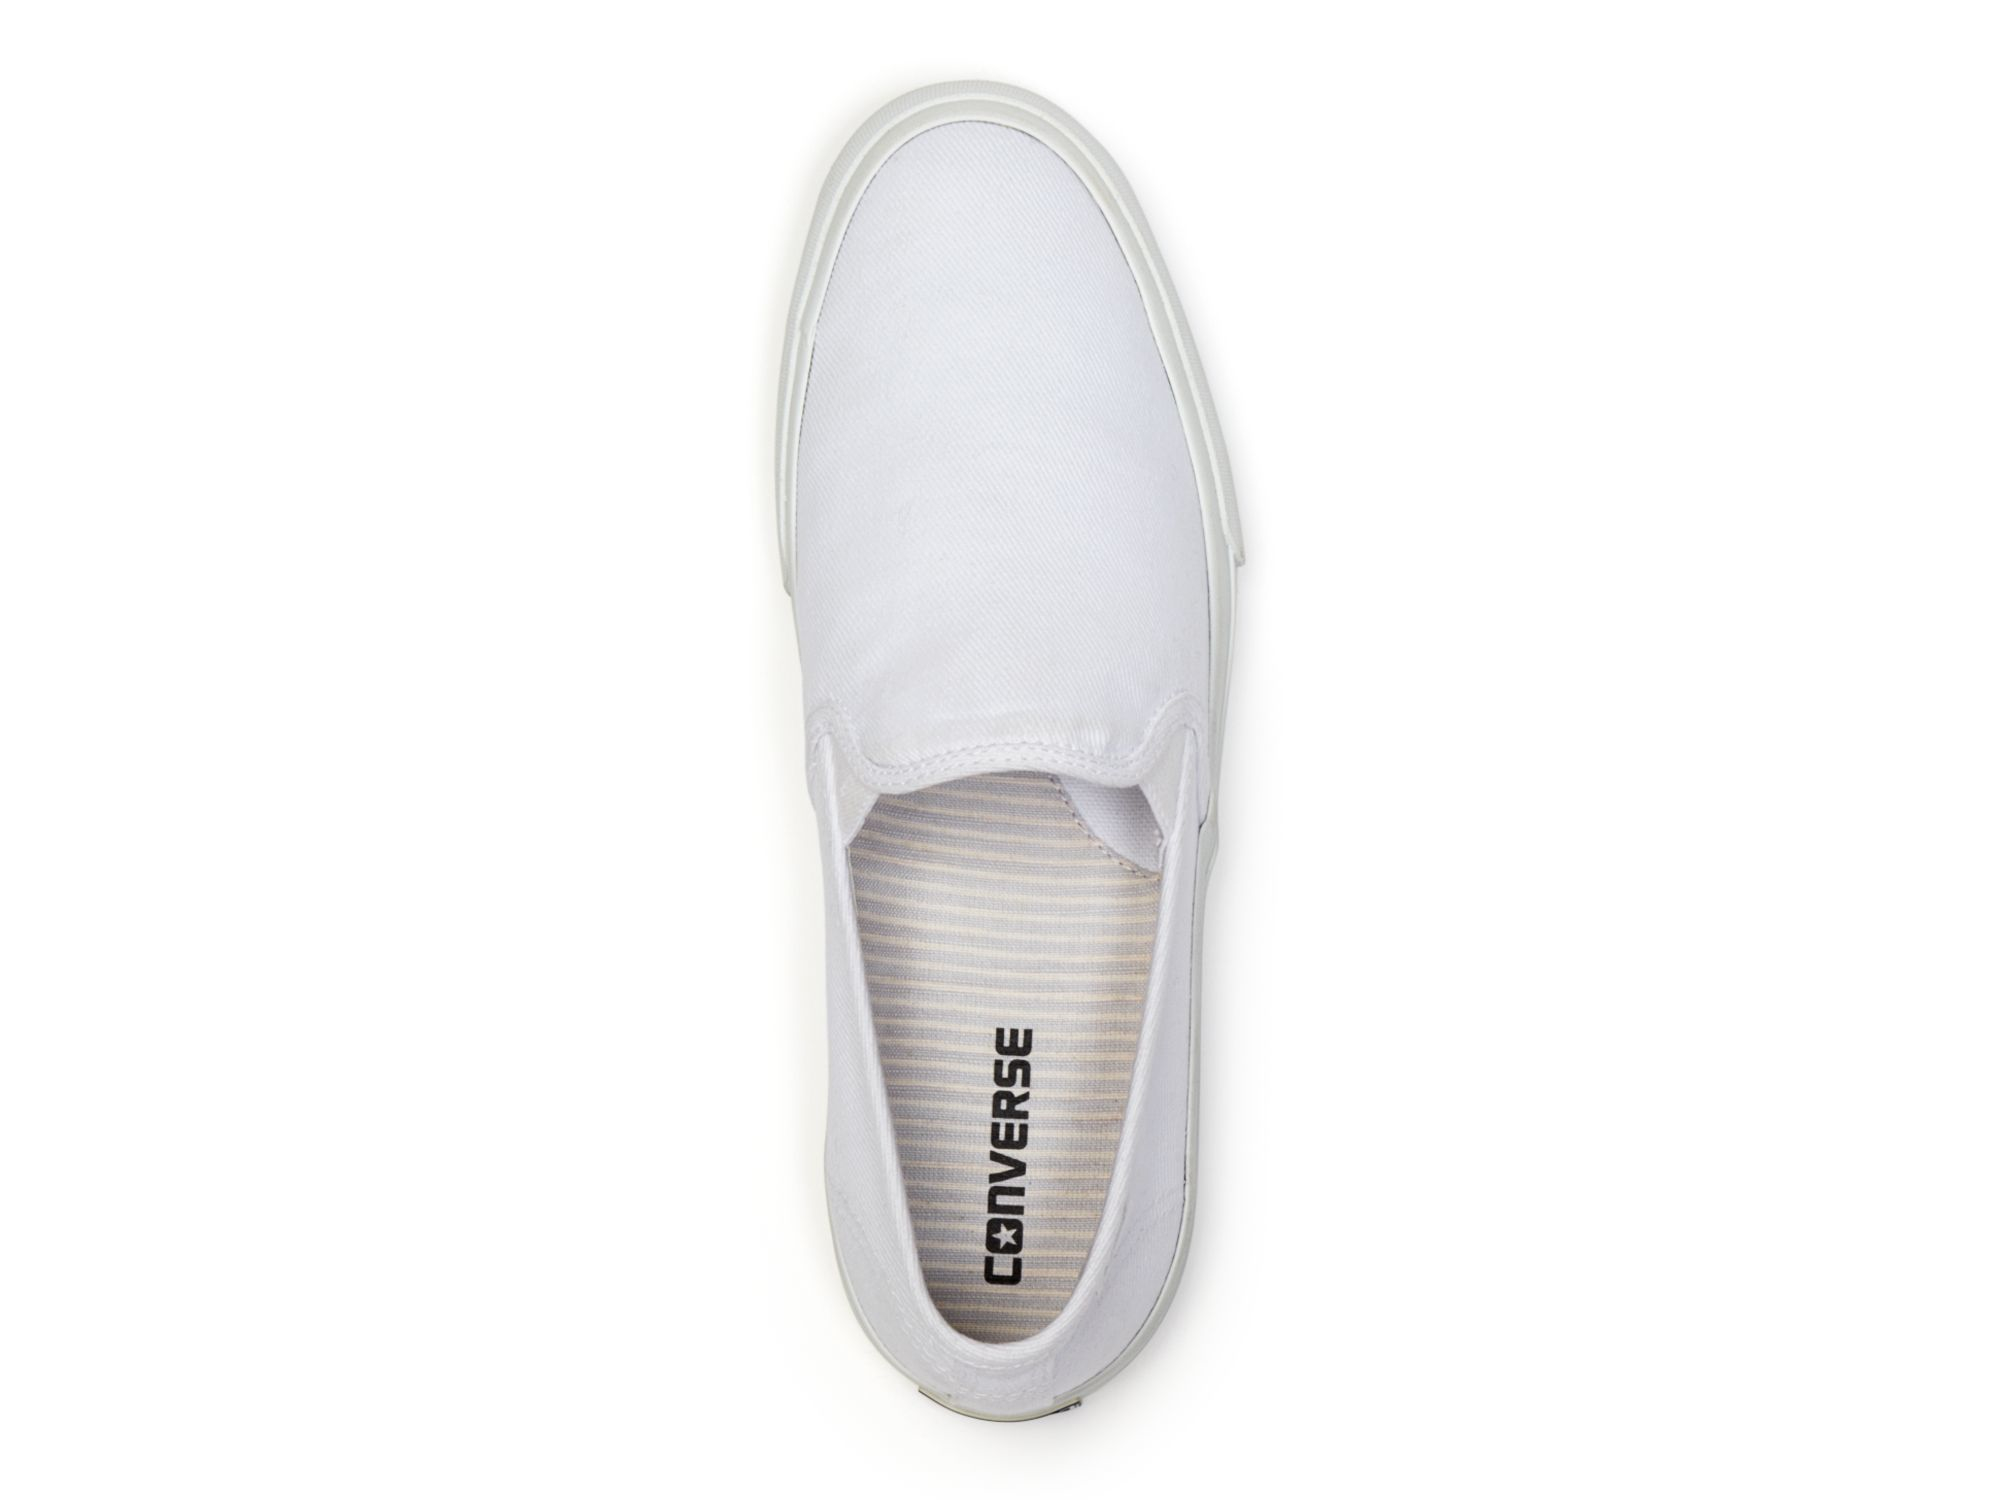 7435cd1cd850 Lyst - Converse Jack Purcell Slip On Sneakers in White for Men